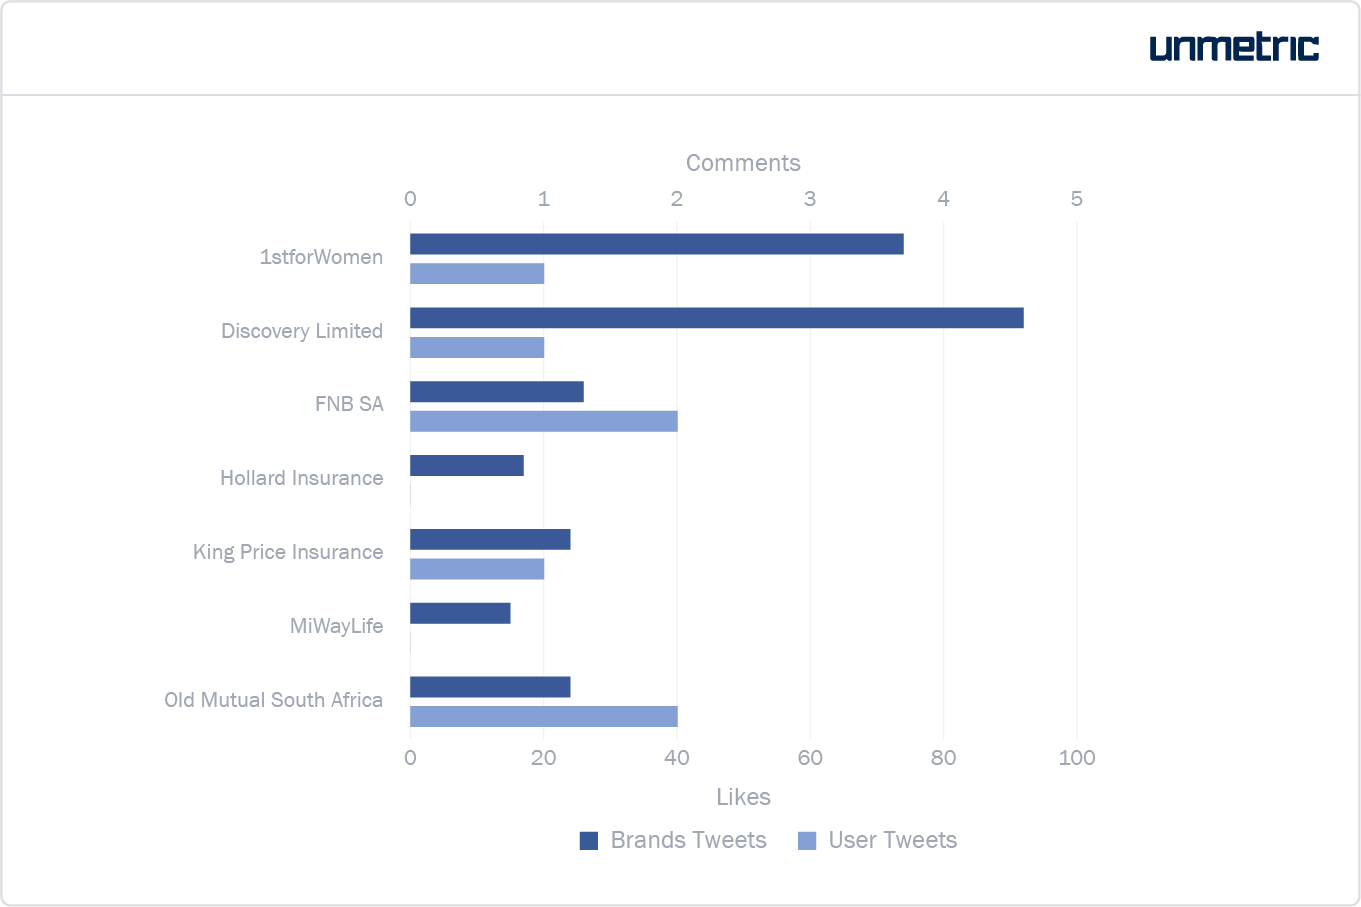 Likes and comments received by each brand on Instagram